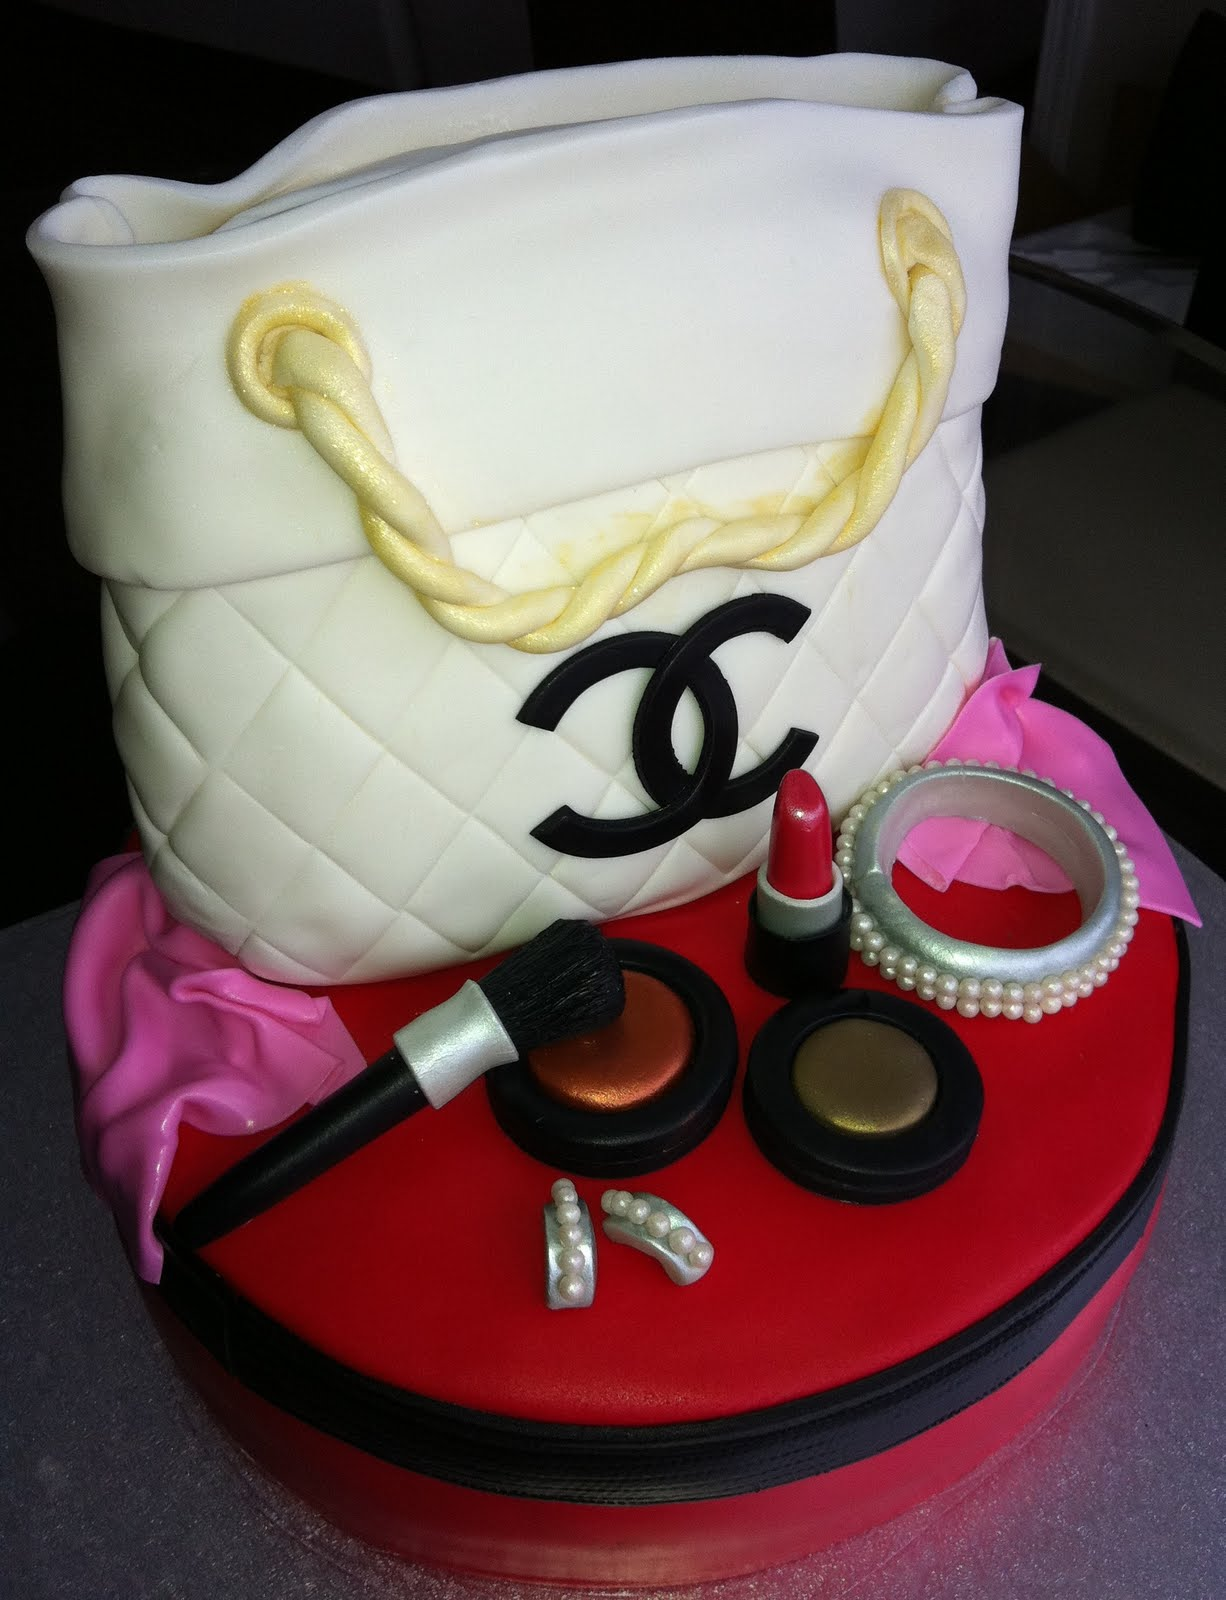 c173ef6e51ee Bag shaped Cakes and Cupcakes - Cakes and Cupcakes Mumbai